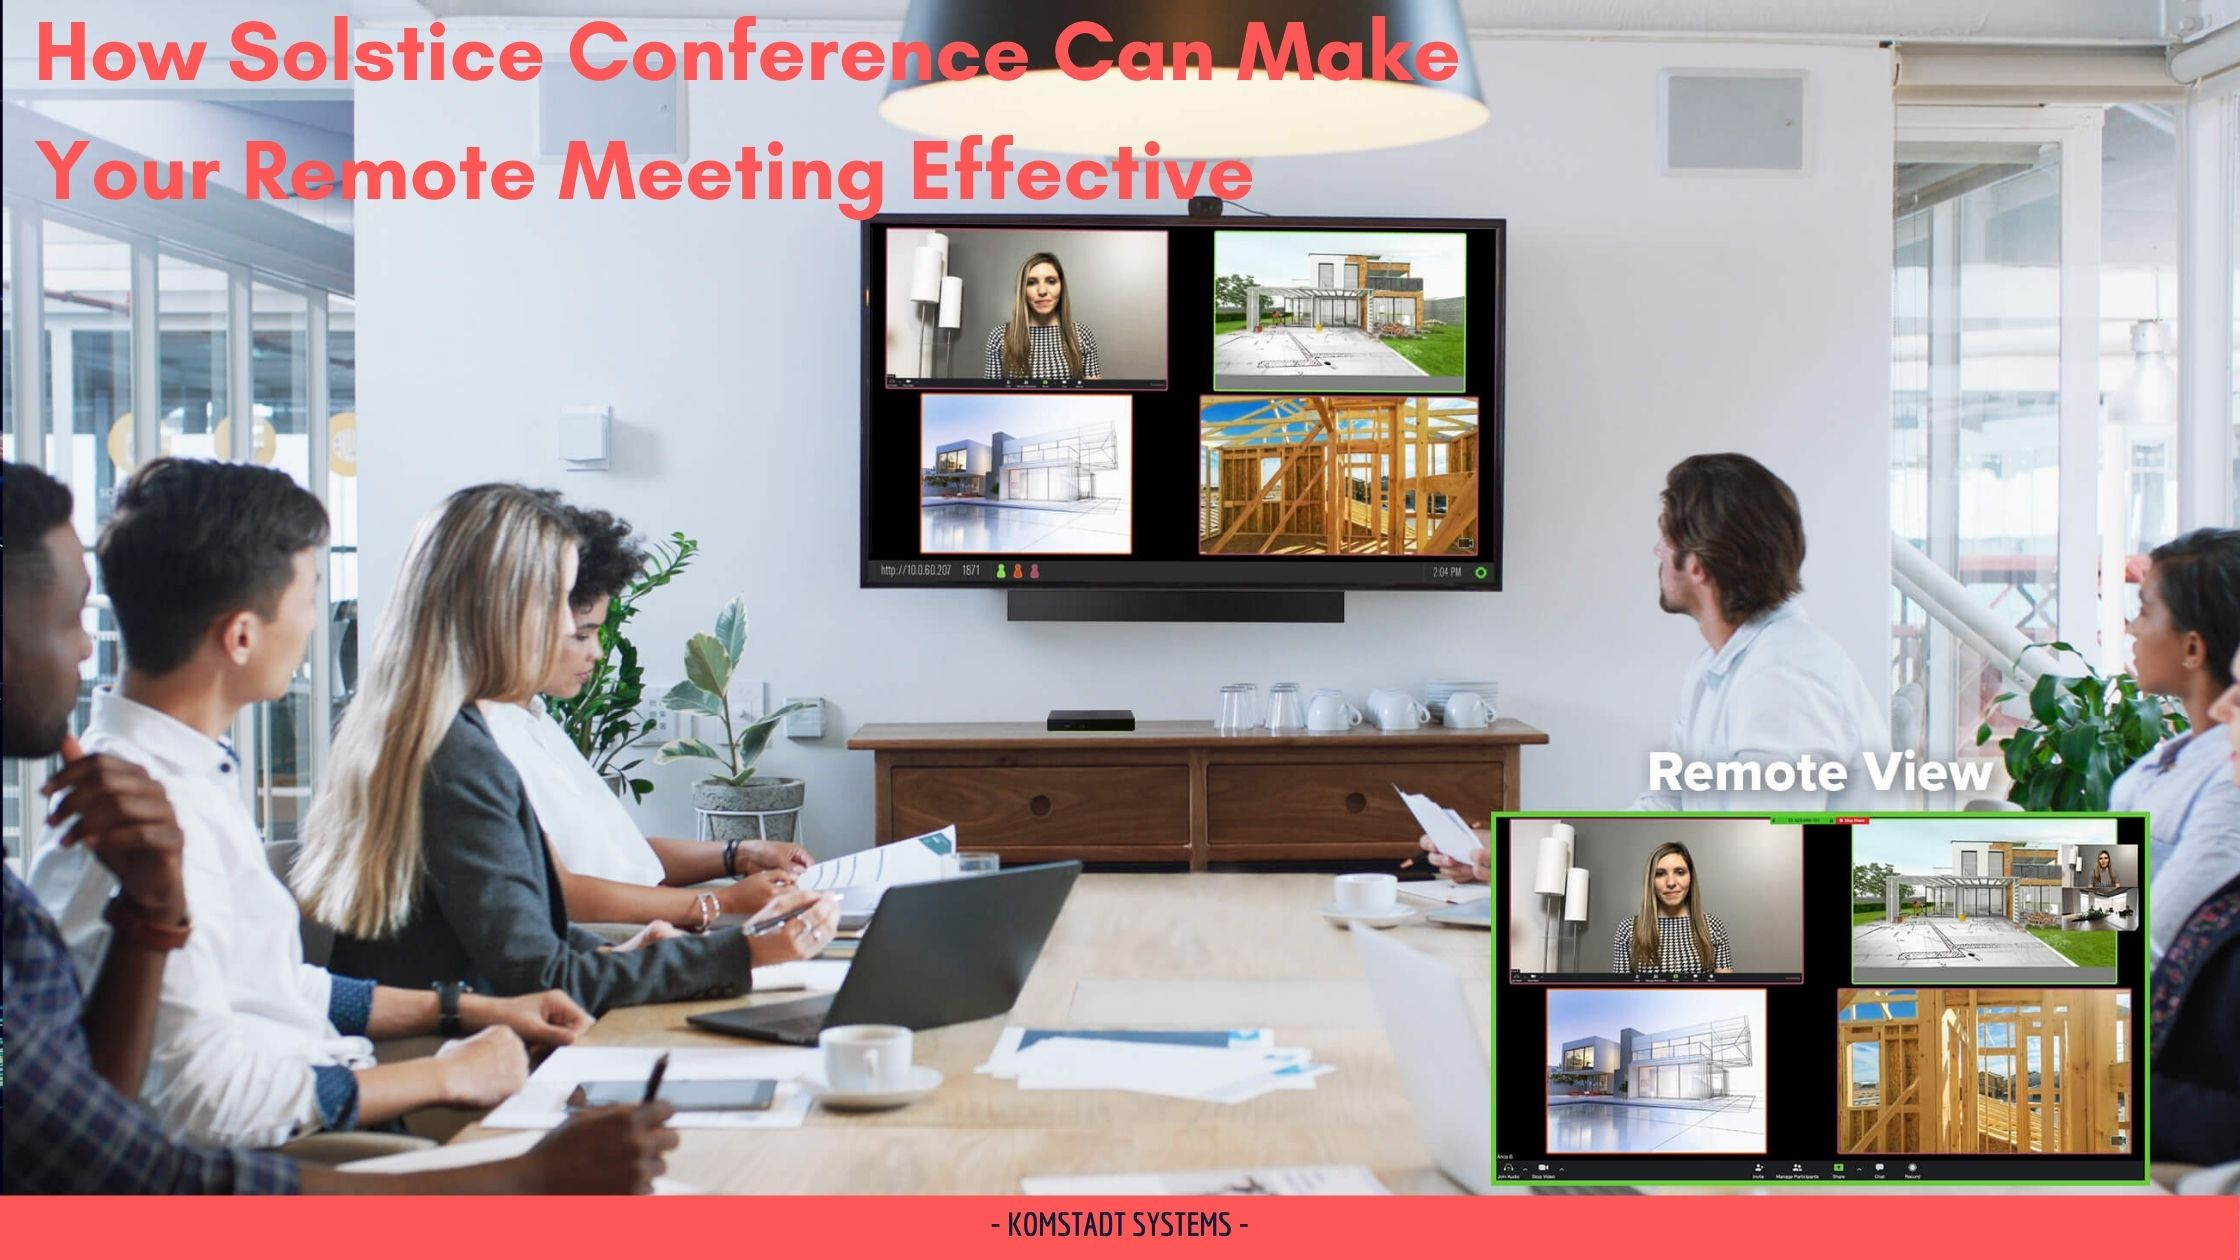 How Solstice Conference Can Make Your Remote Meeting Effective